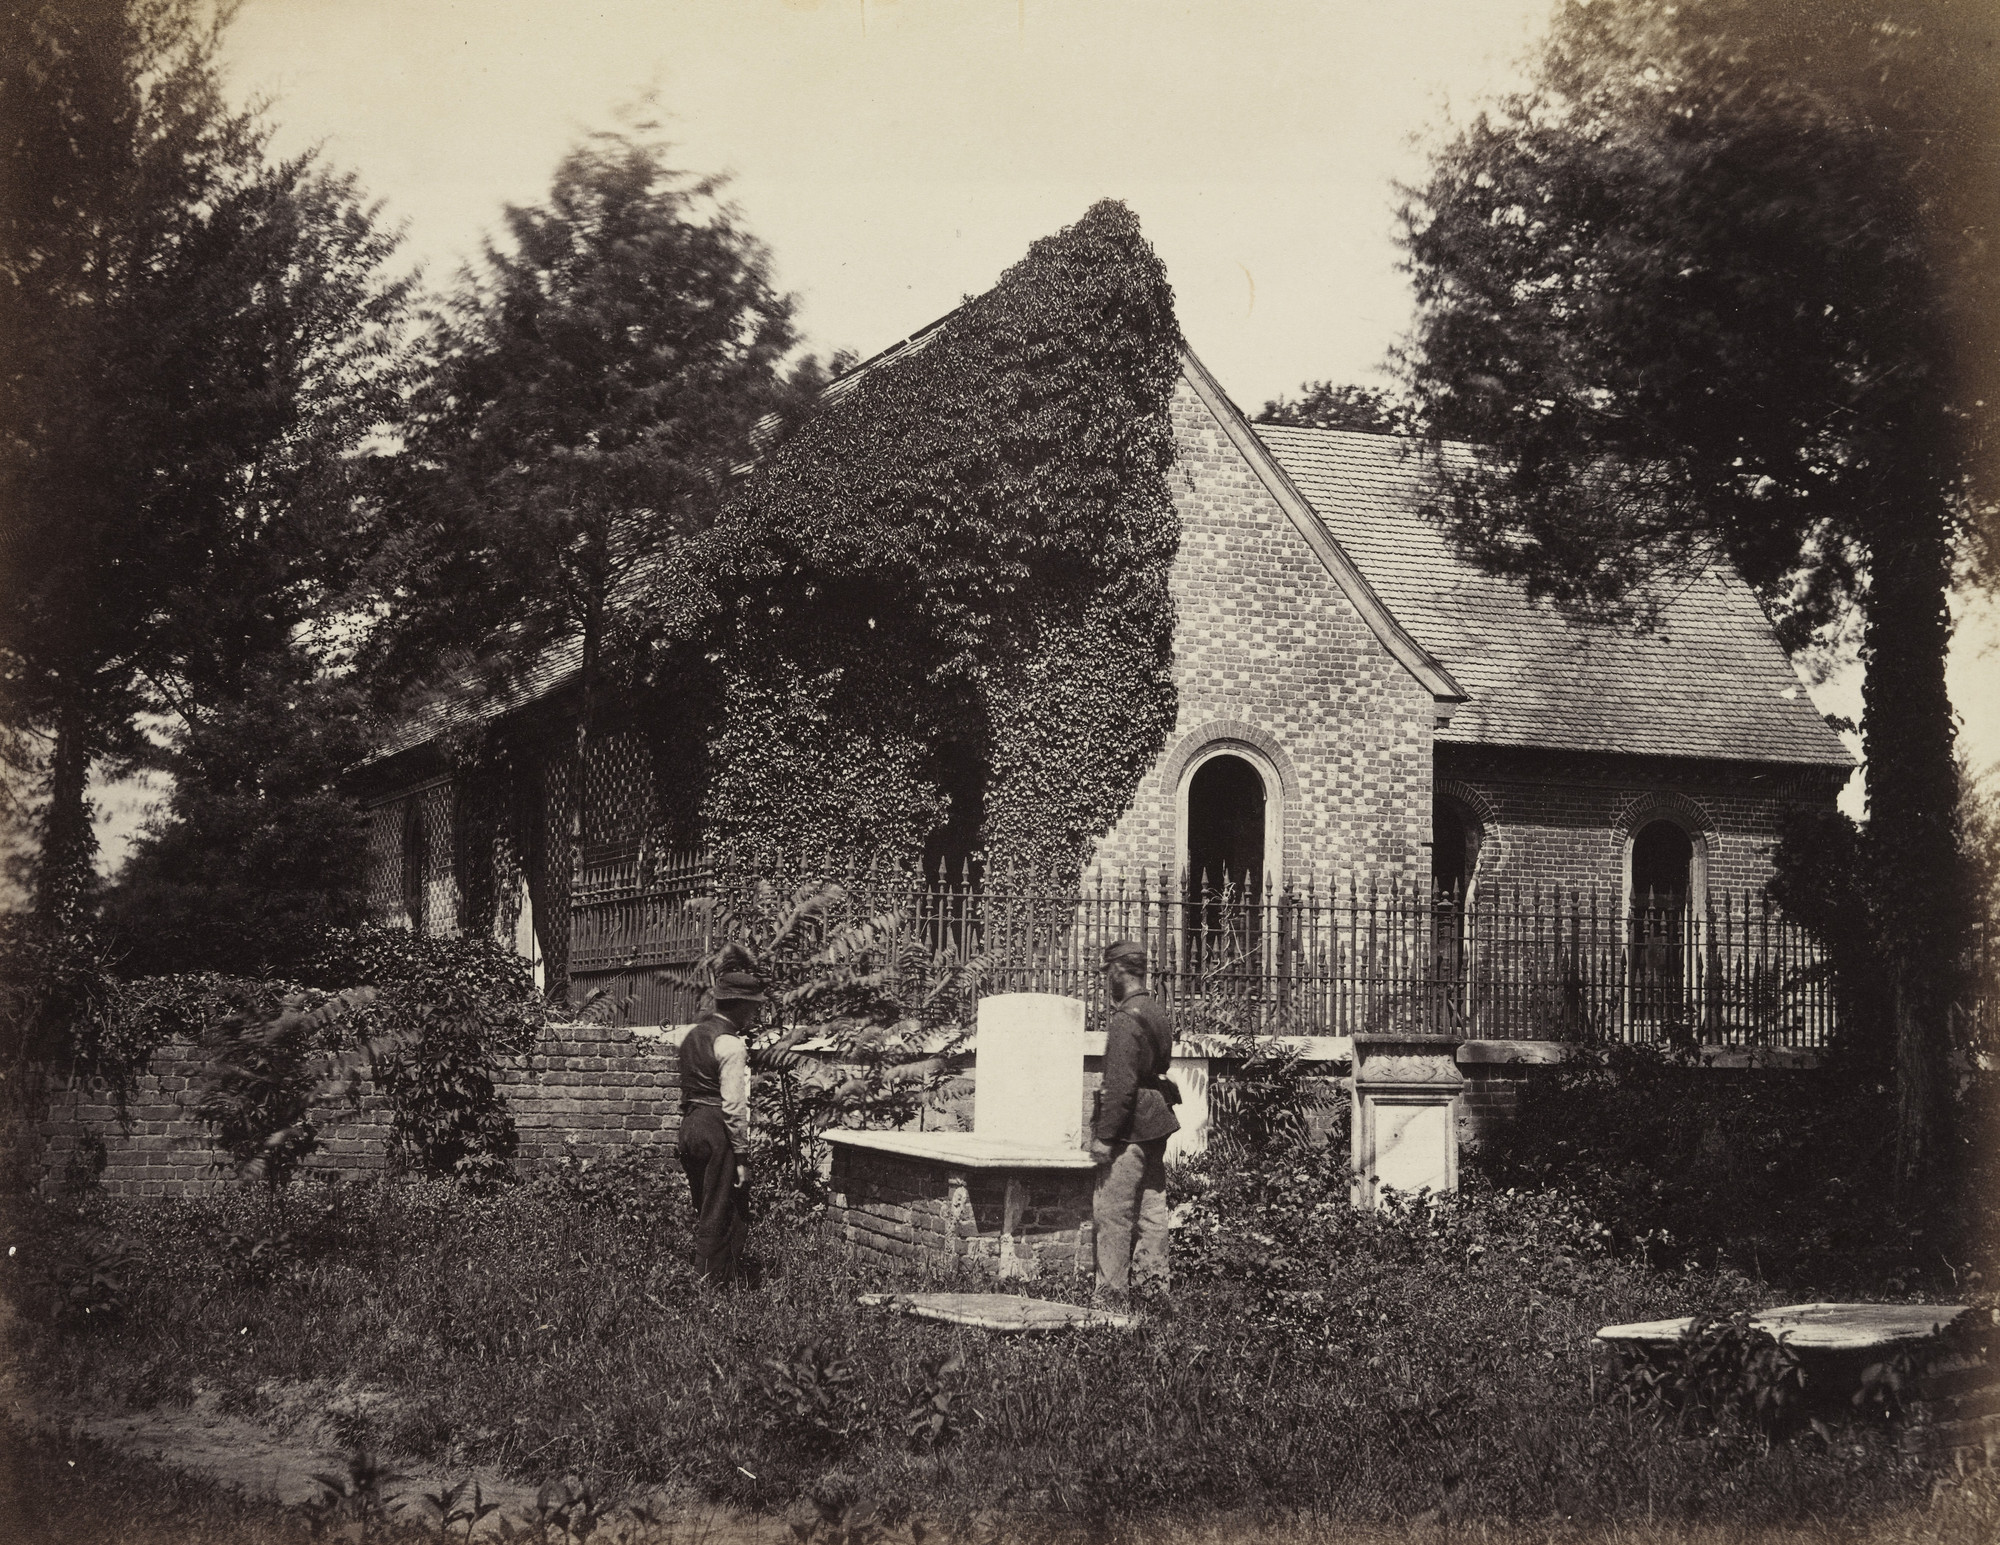 Alexander Gardner, Timothy O'Sullivan. Blandford Church, Petersburg, Virginia. April, 1865